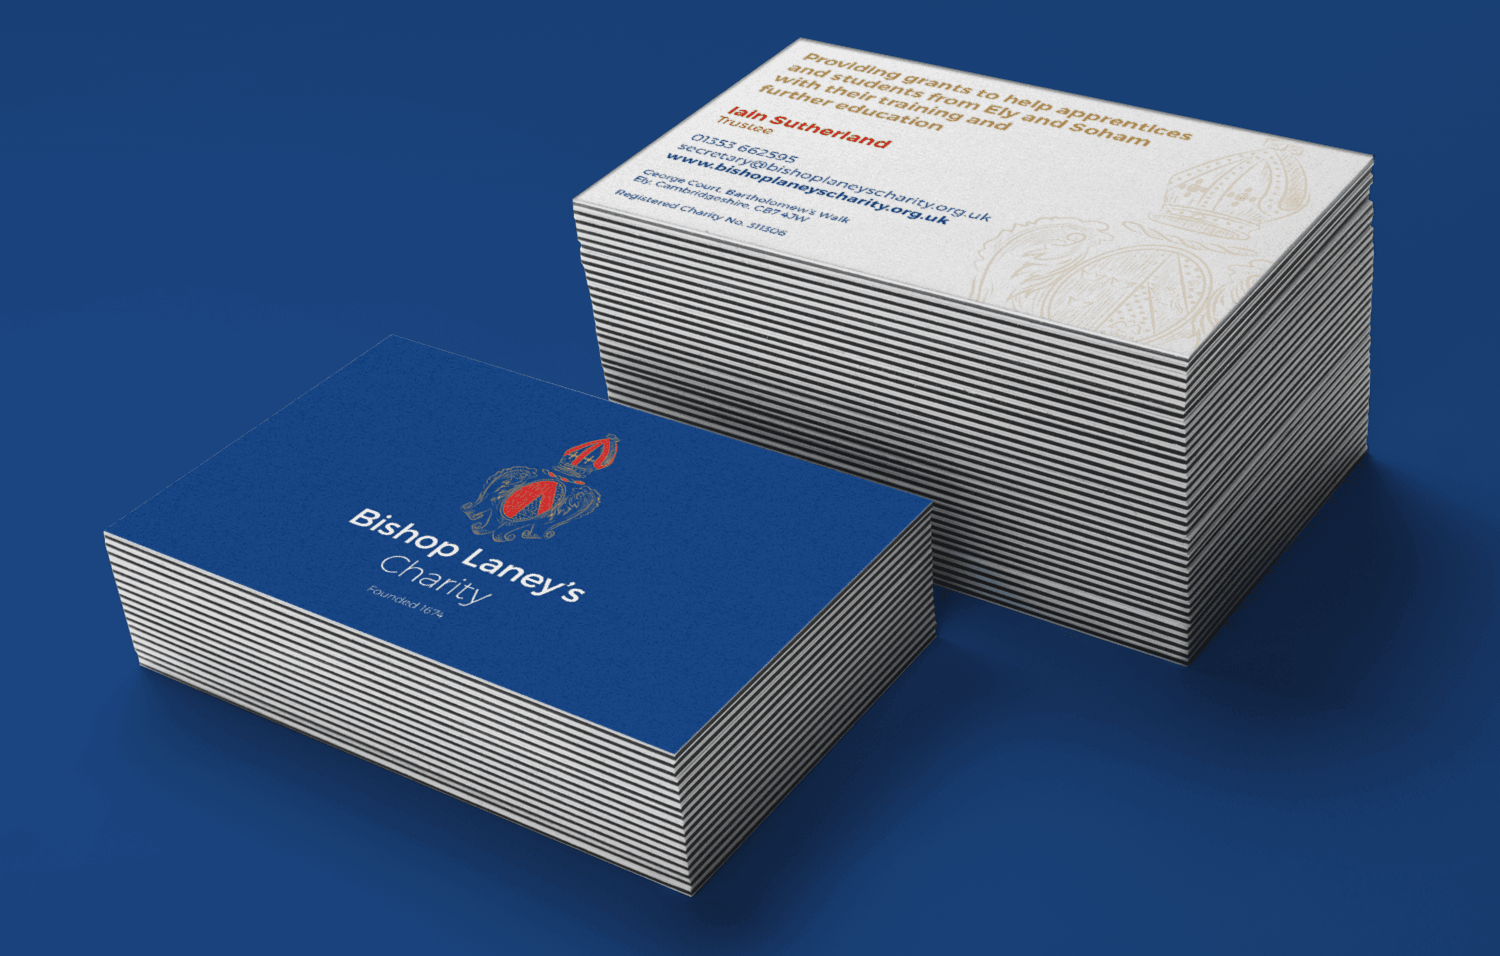 Bishop Laney's Charity Business Cards - Infiniti Graphics